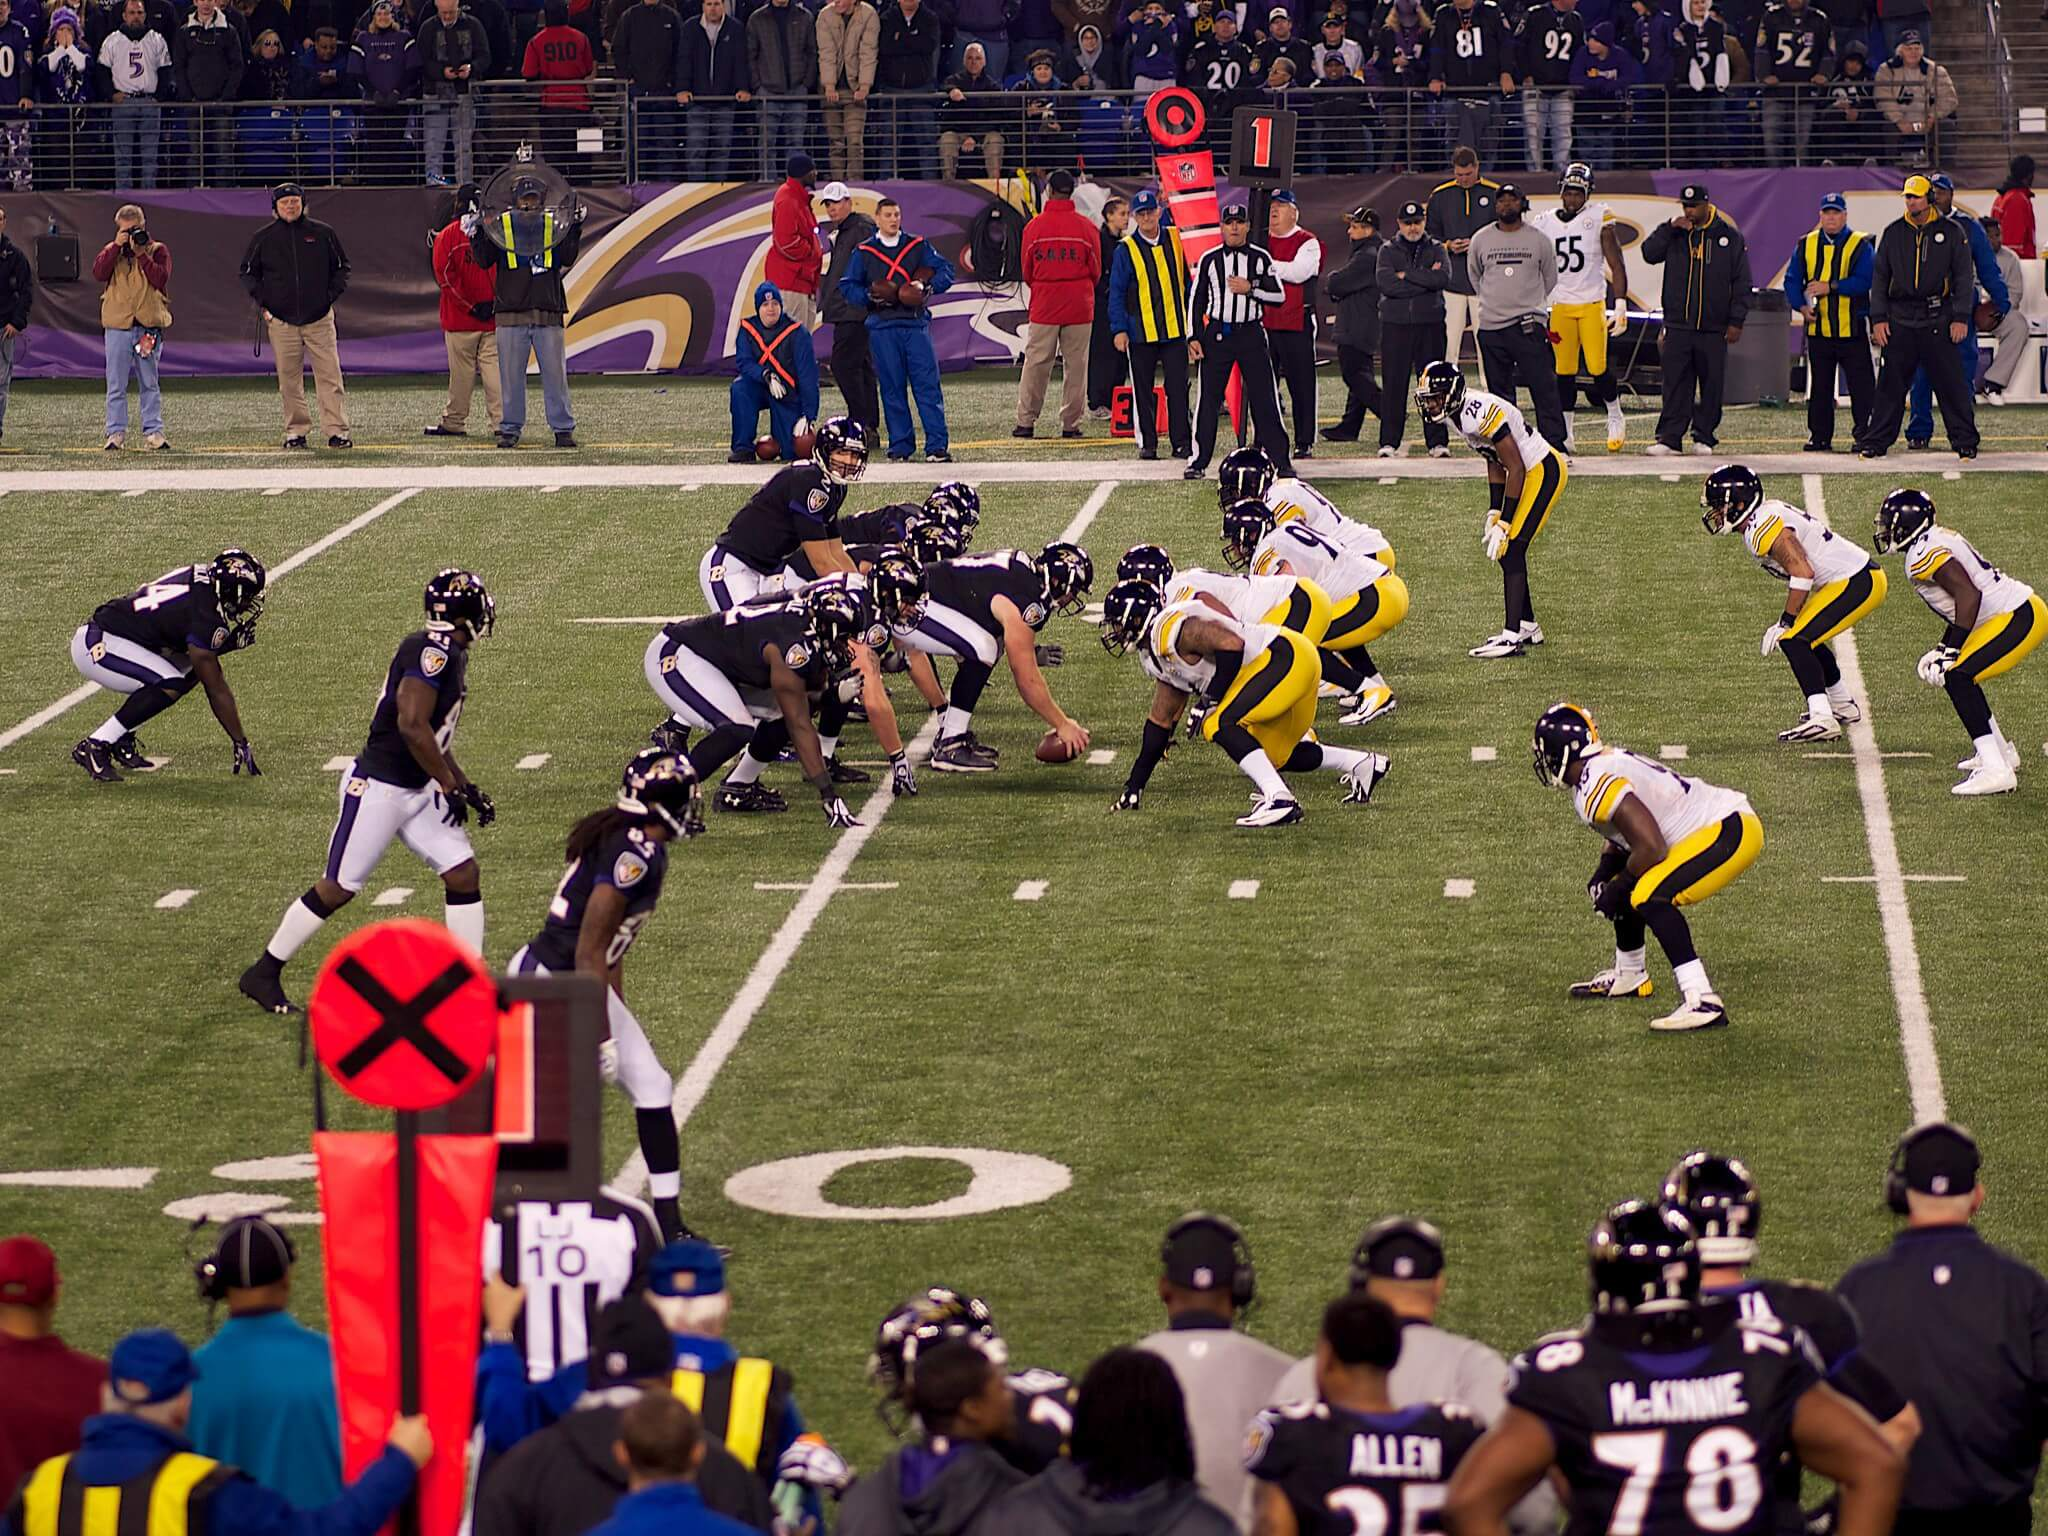 Pittsburgh Steelers vs Baltimore Ravens NFL football rivalry